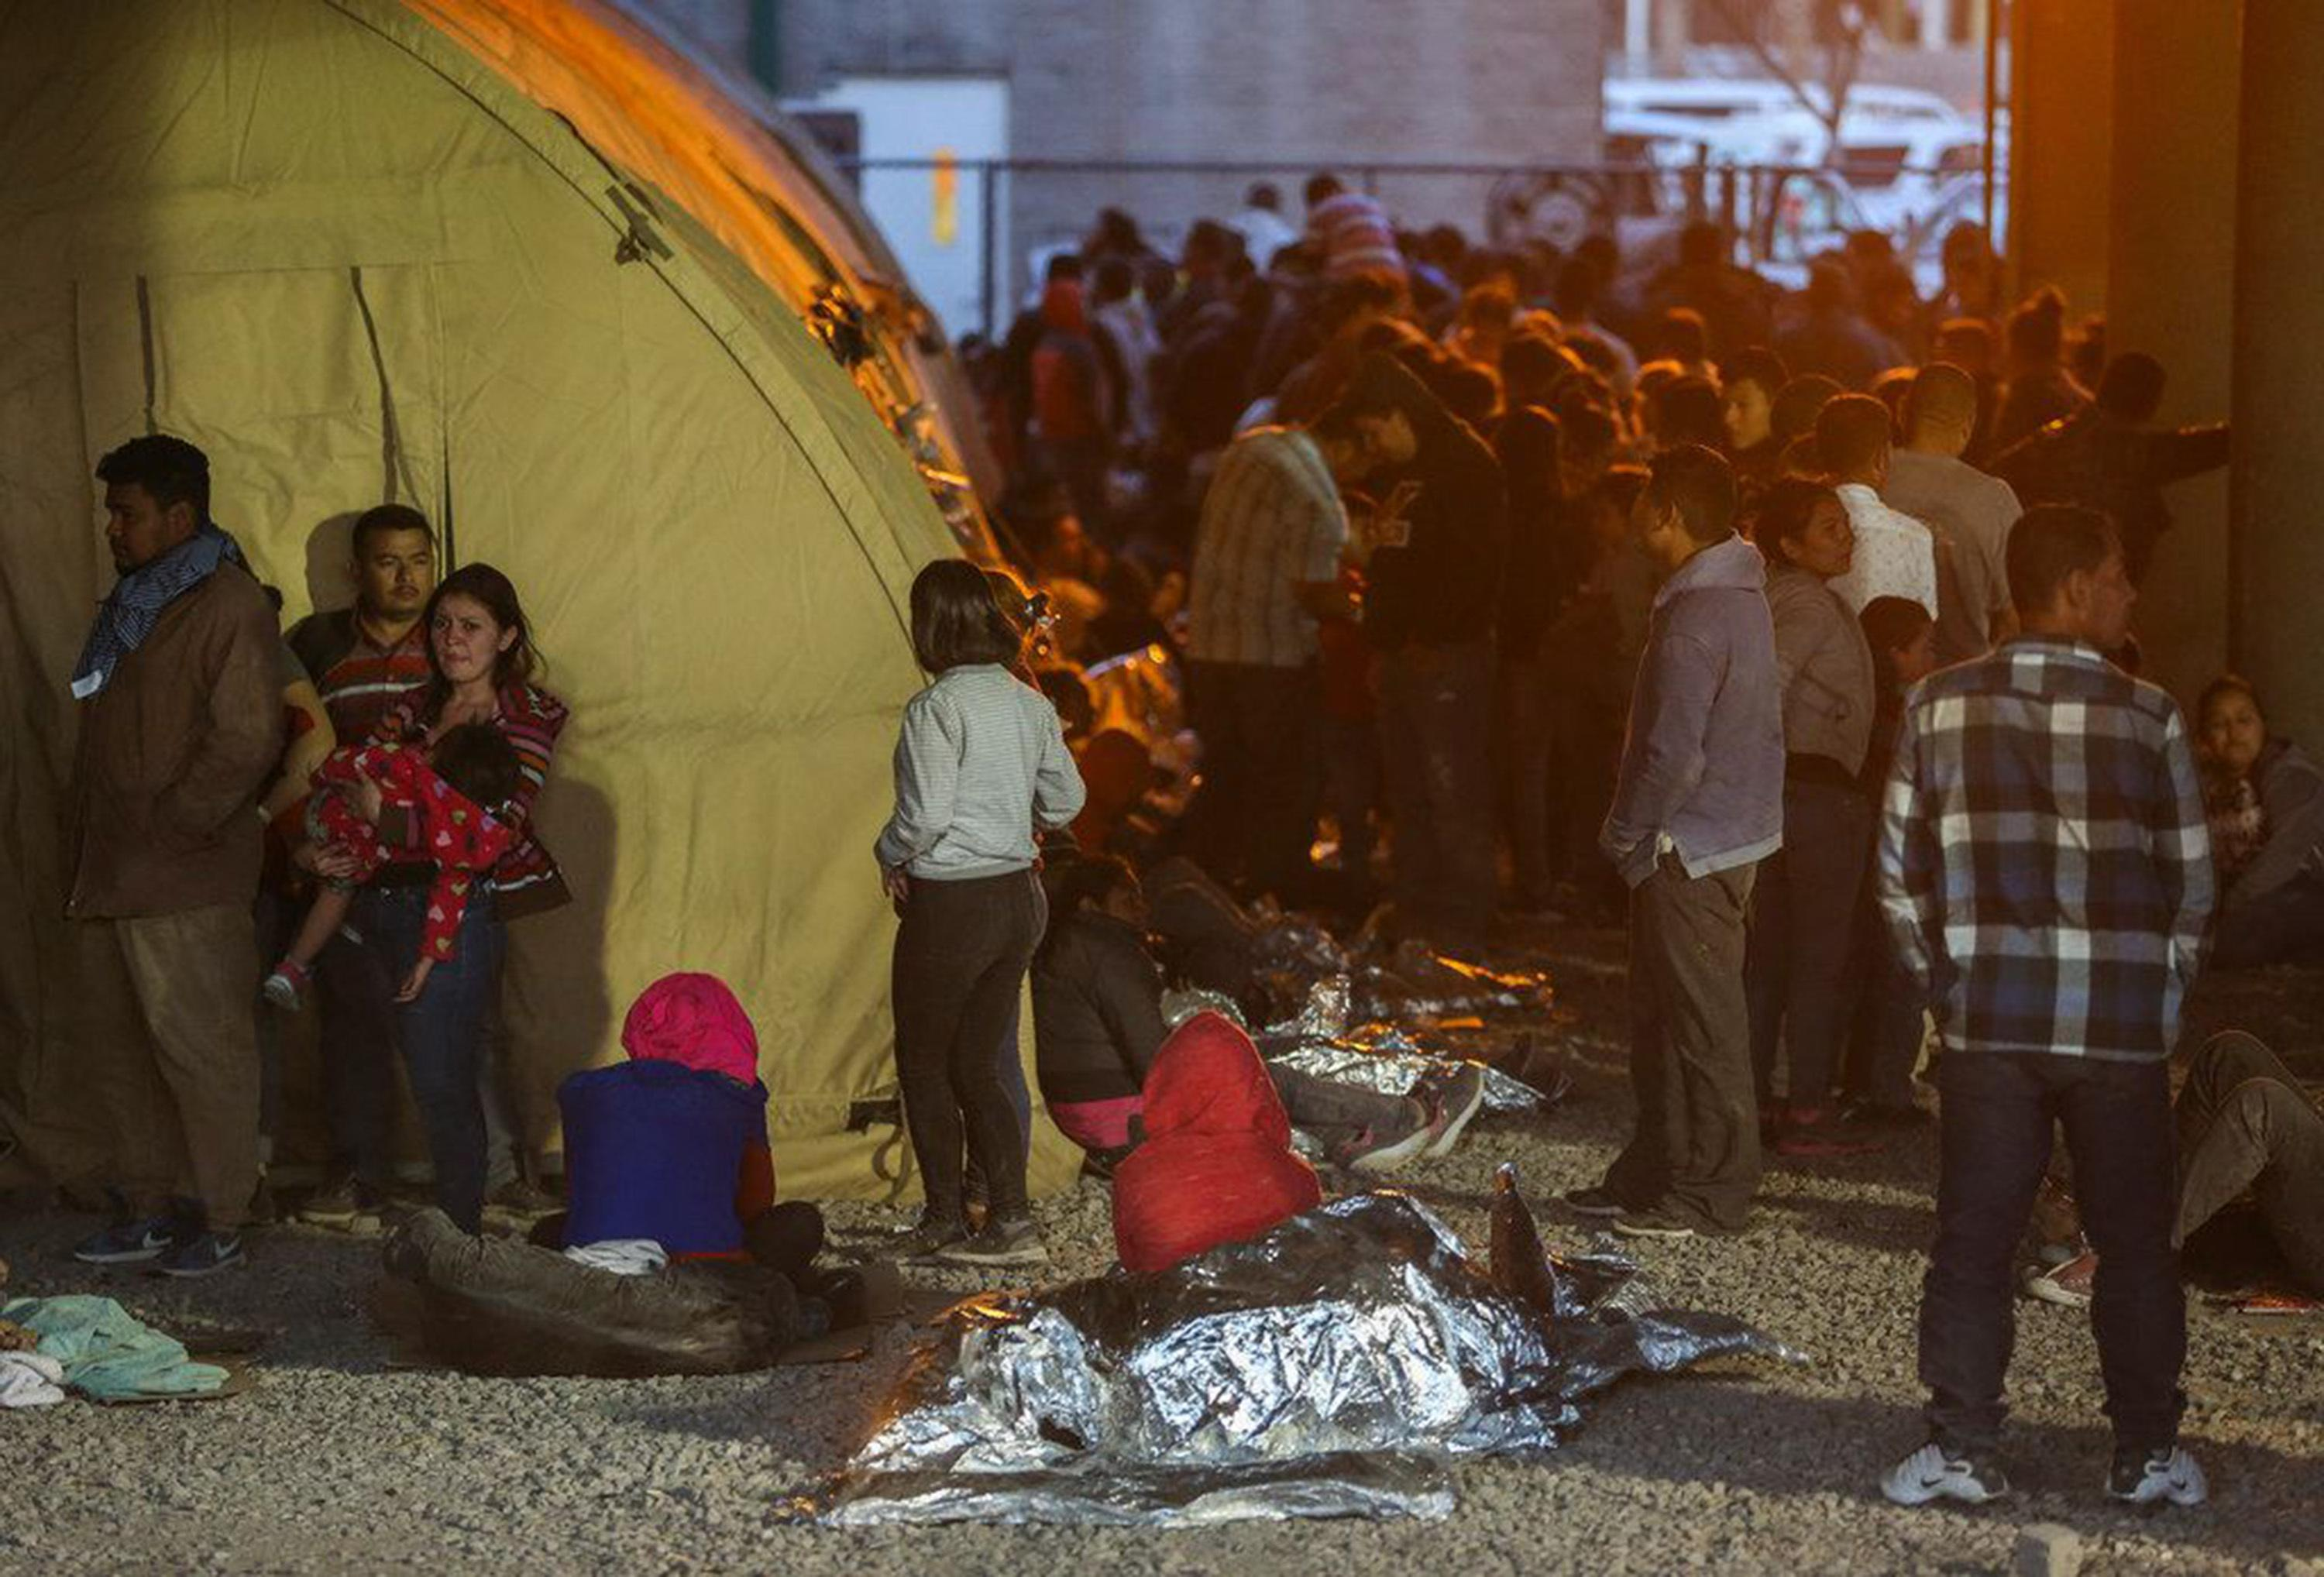 Commentary: Racism in immigration asylum decisions